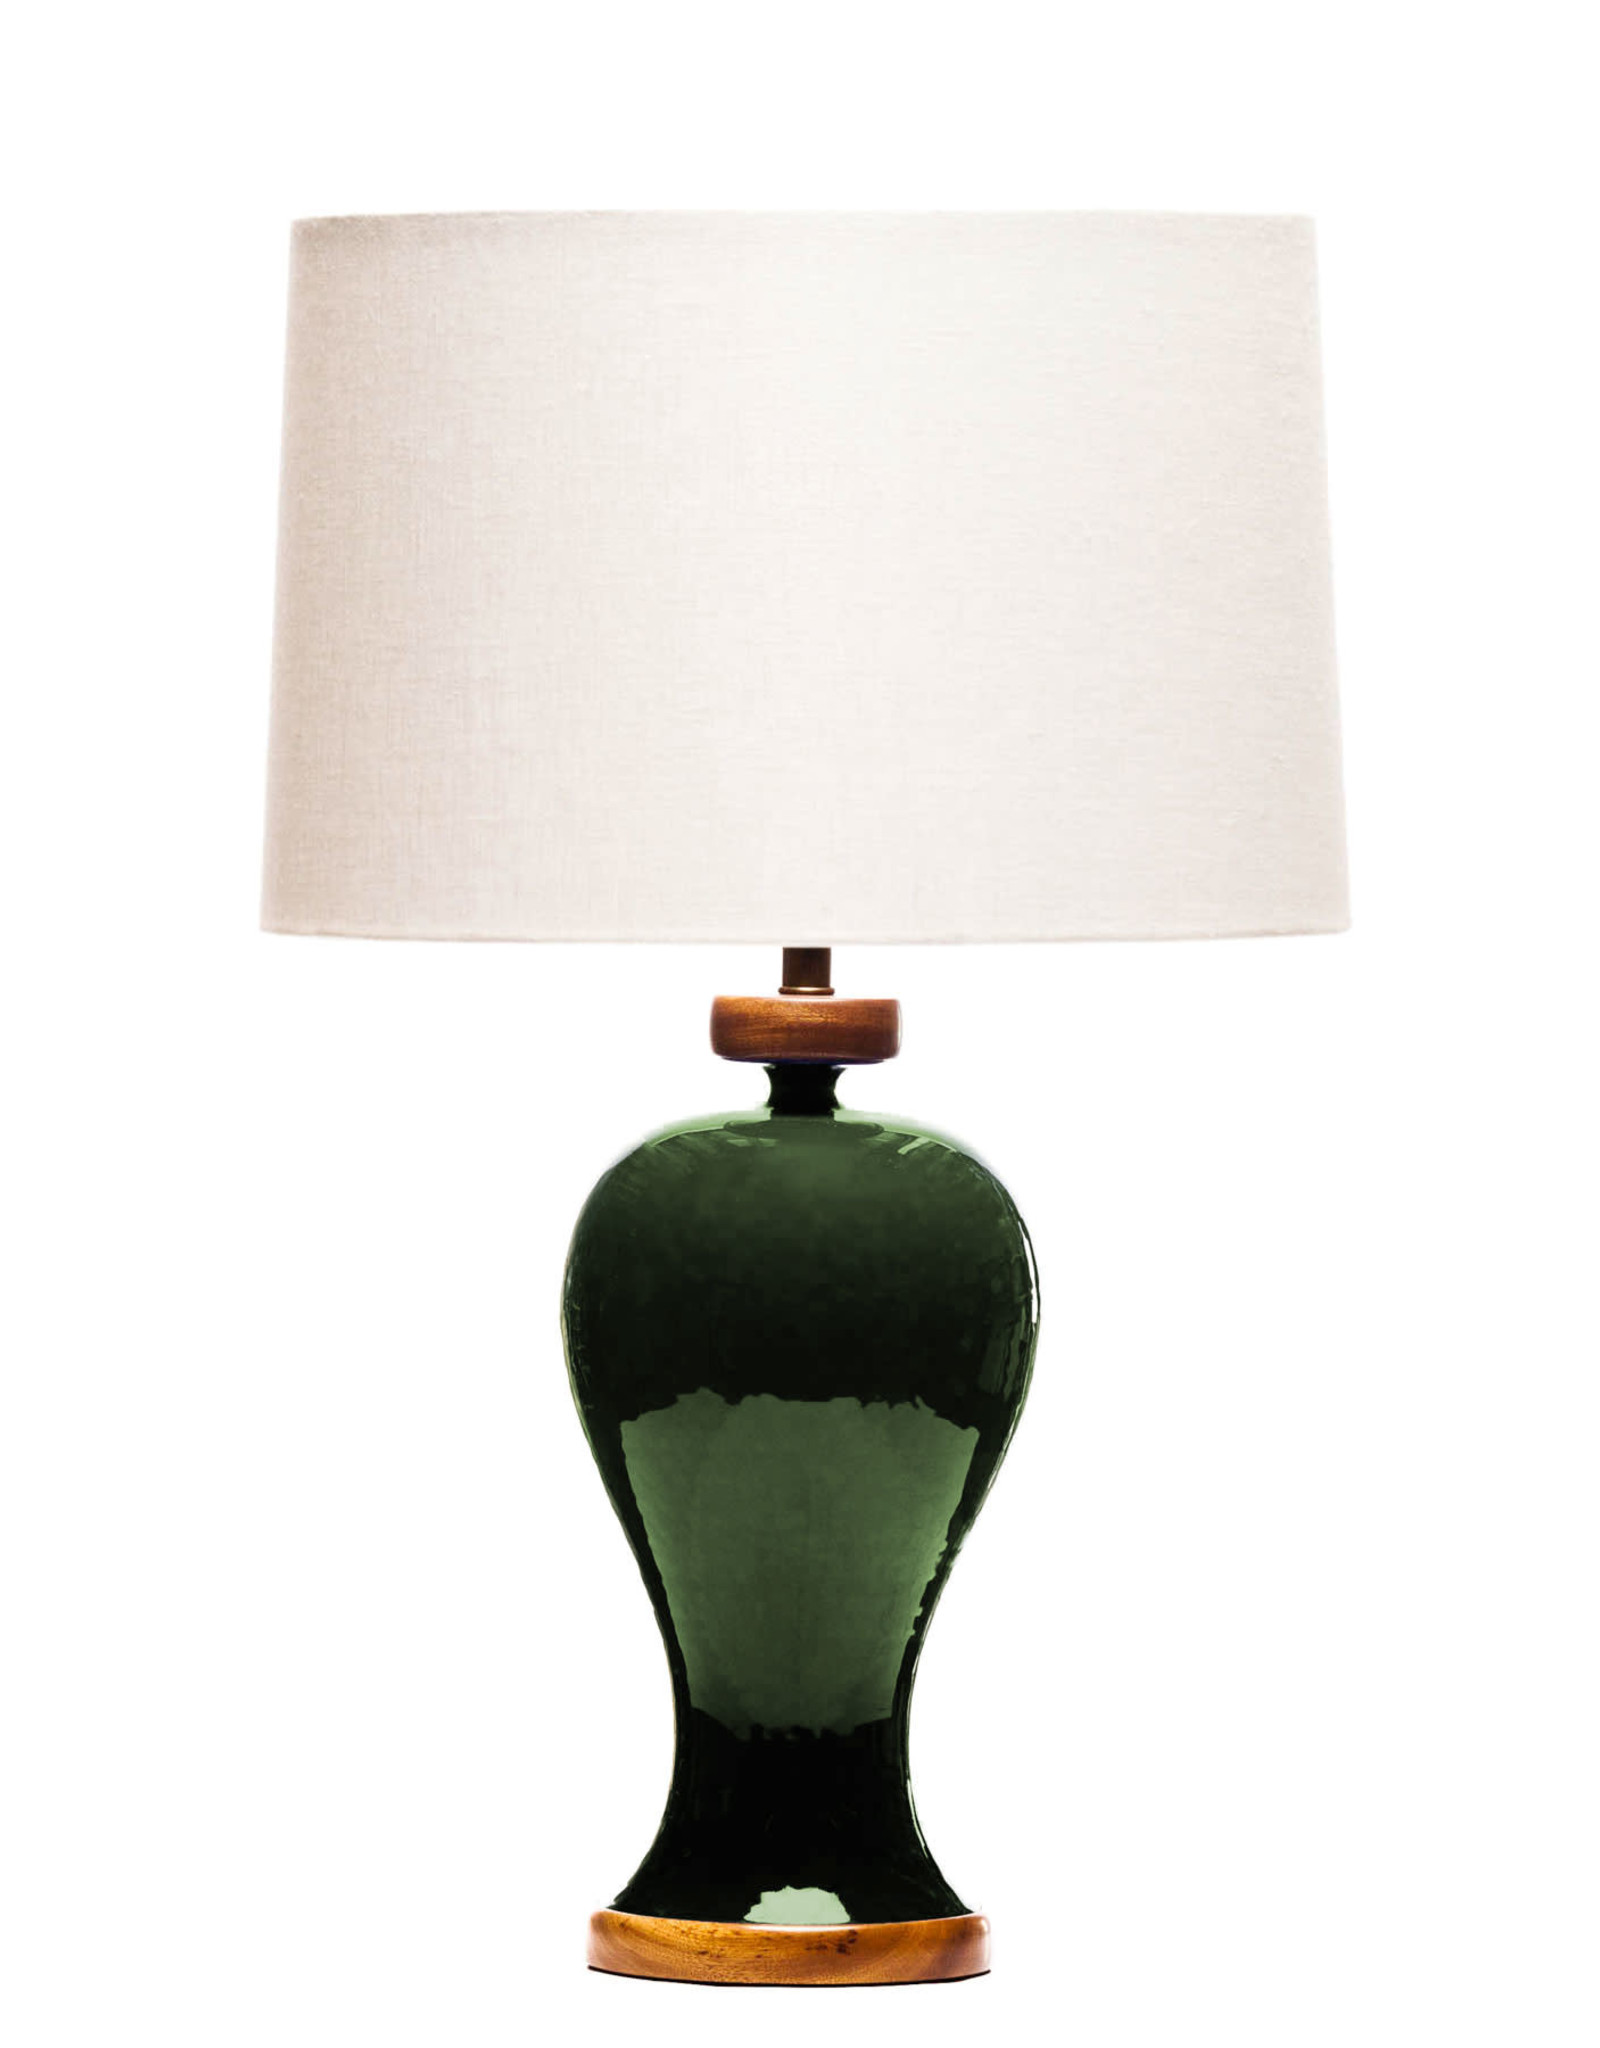 Lawrence & Scott Anita Porcelain Table Lamp (Racing Green)